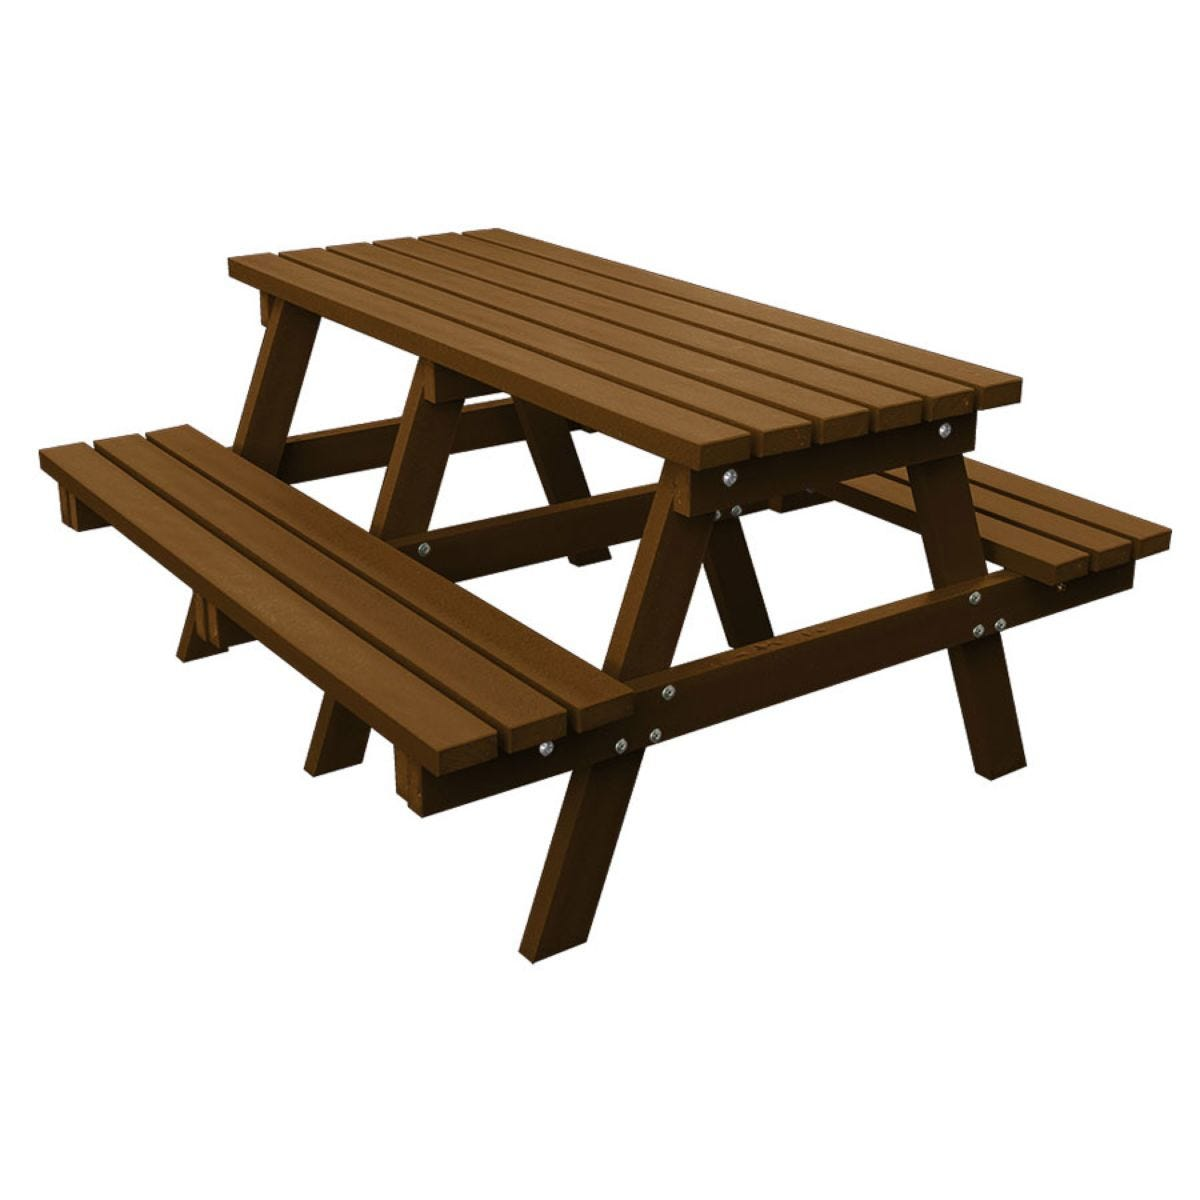 NBB Recycled Heavy Duty A-Frame 1.8m Picnic Table - Brown